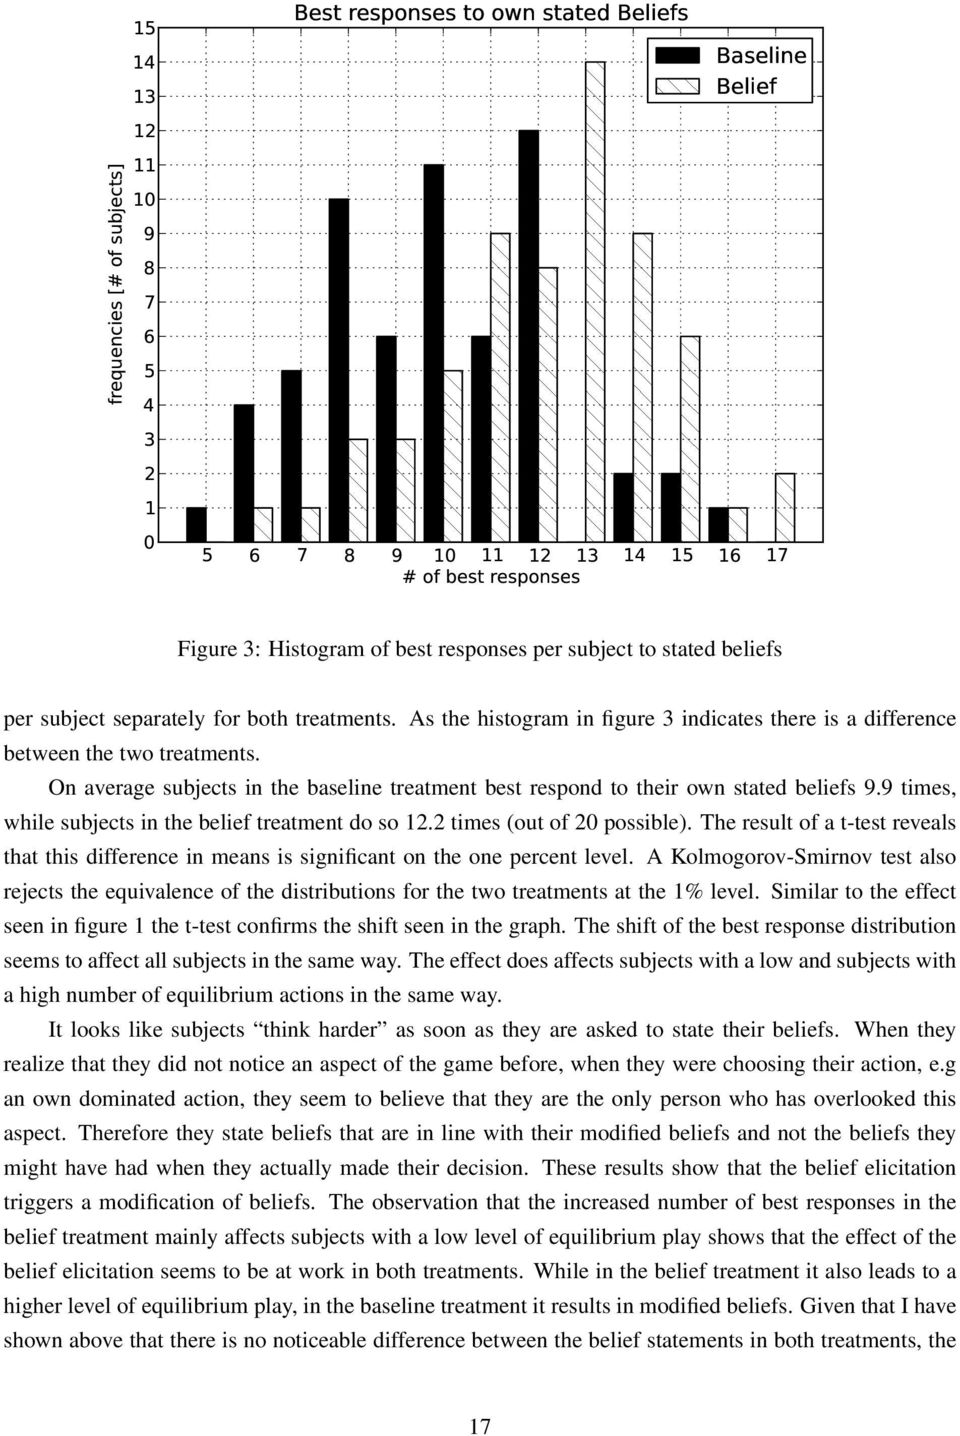 On average subjects in the baseline treatment best respond to their own stated beliefs 9.9 times, while subjects in the belief treatment do so 12.2 times (out of 20 possible).